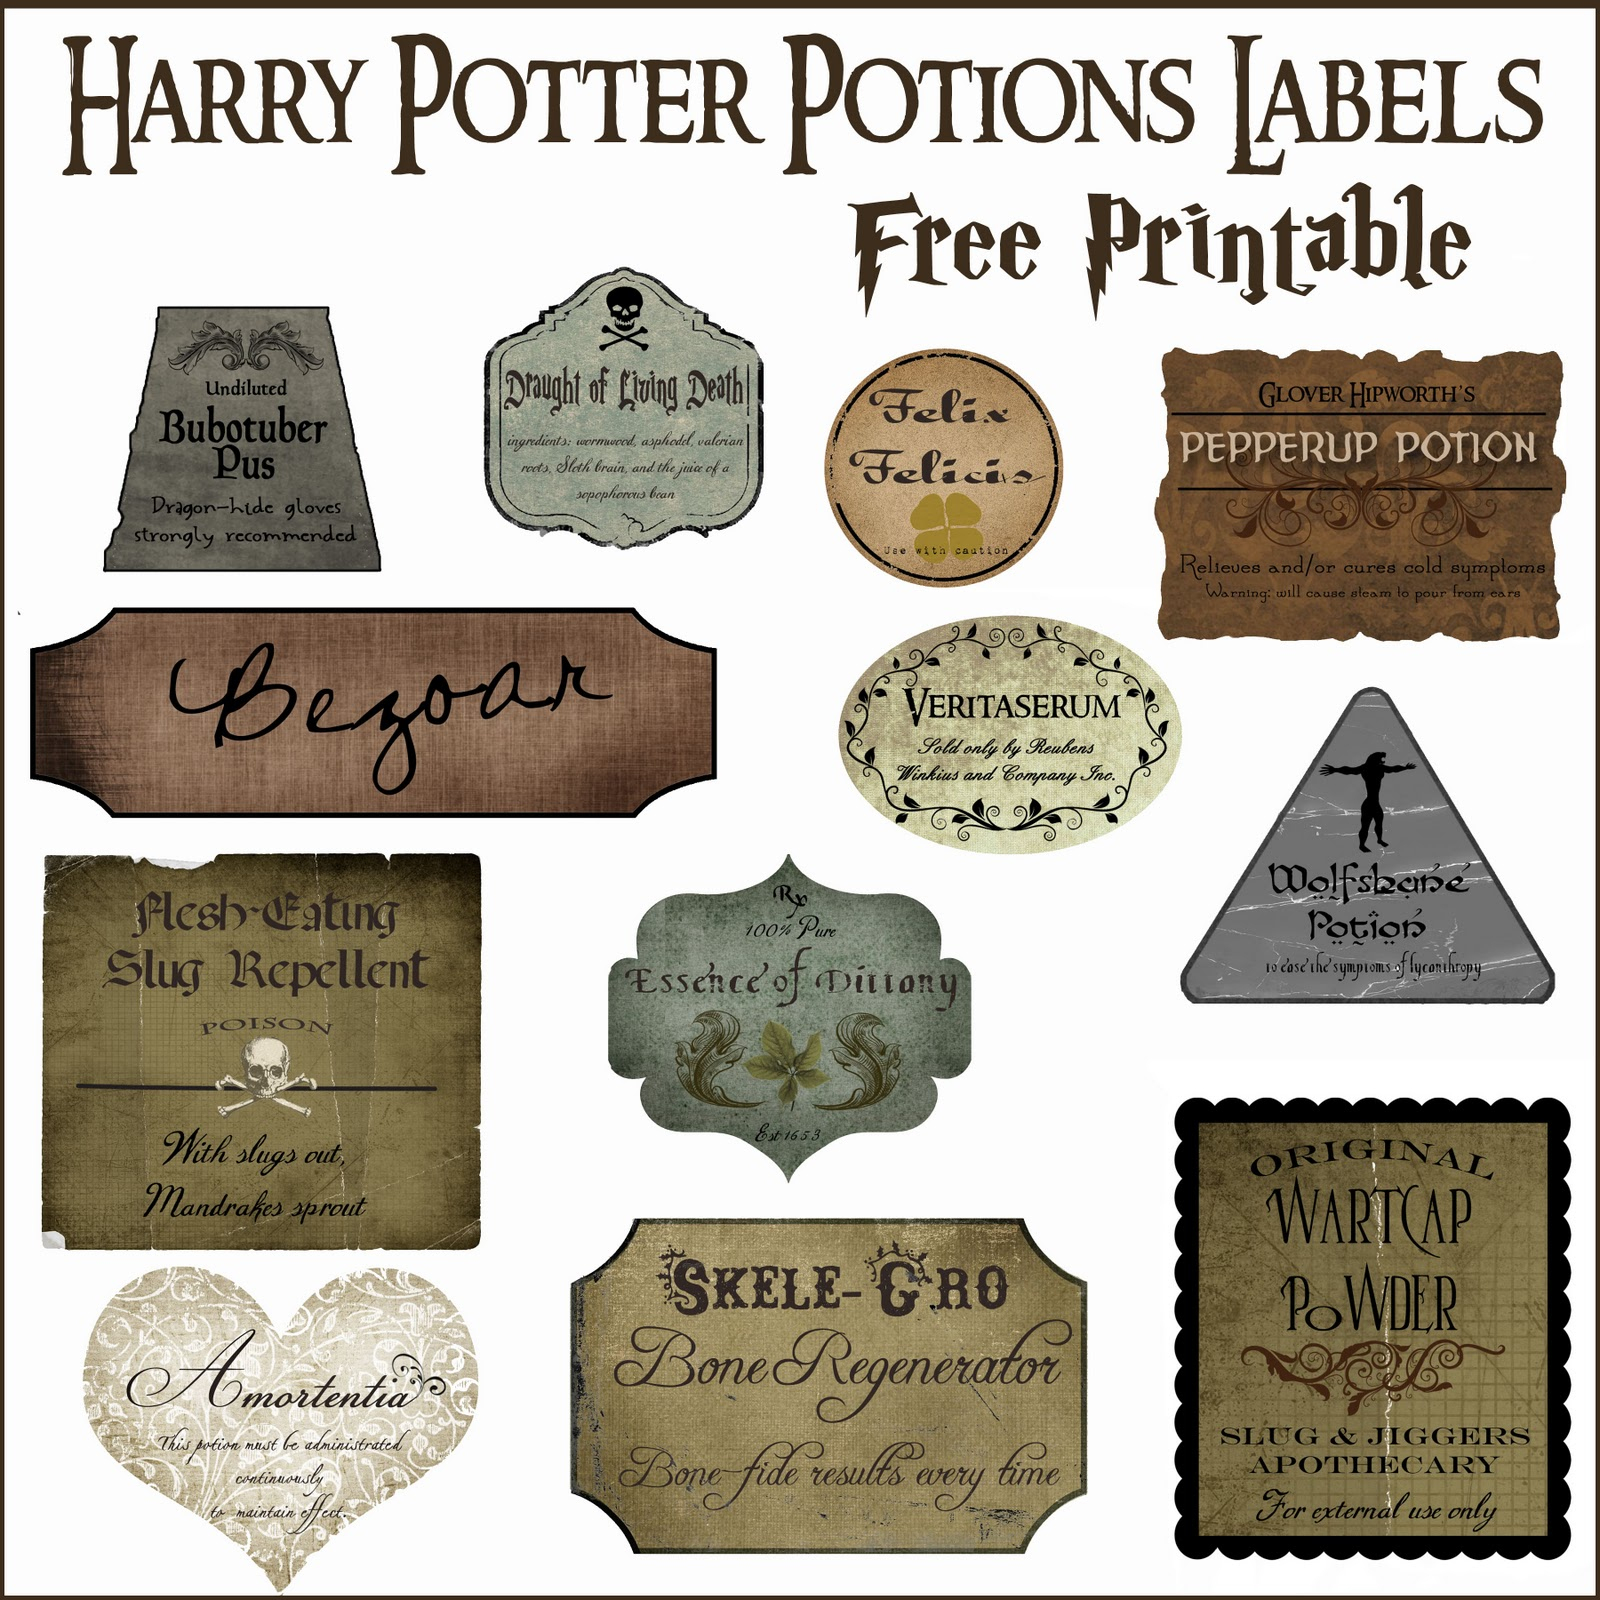 Harry Potter Potion Label Printables - Free Printable Potion Labels